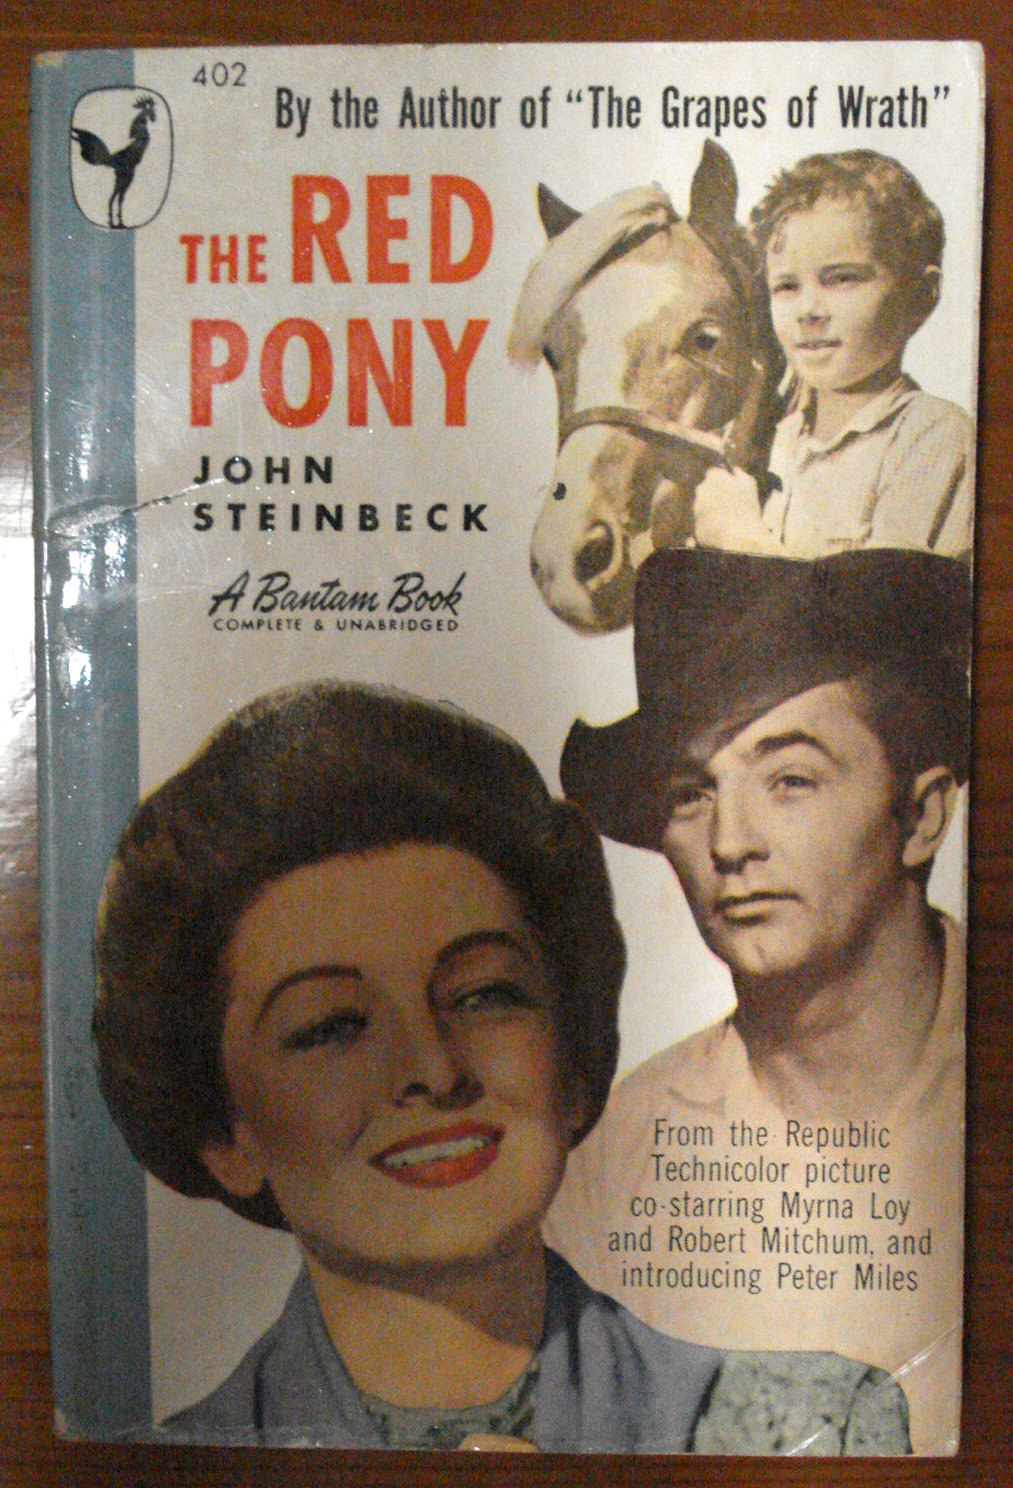 a review of john steinbecks the red pony Buy a cheap copy of the red pony book by john steinbeck  i read some of  these reviews and could not believe how unrealistic some of these people are.